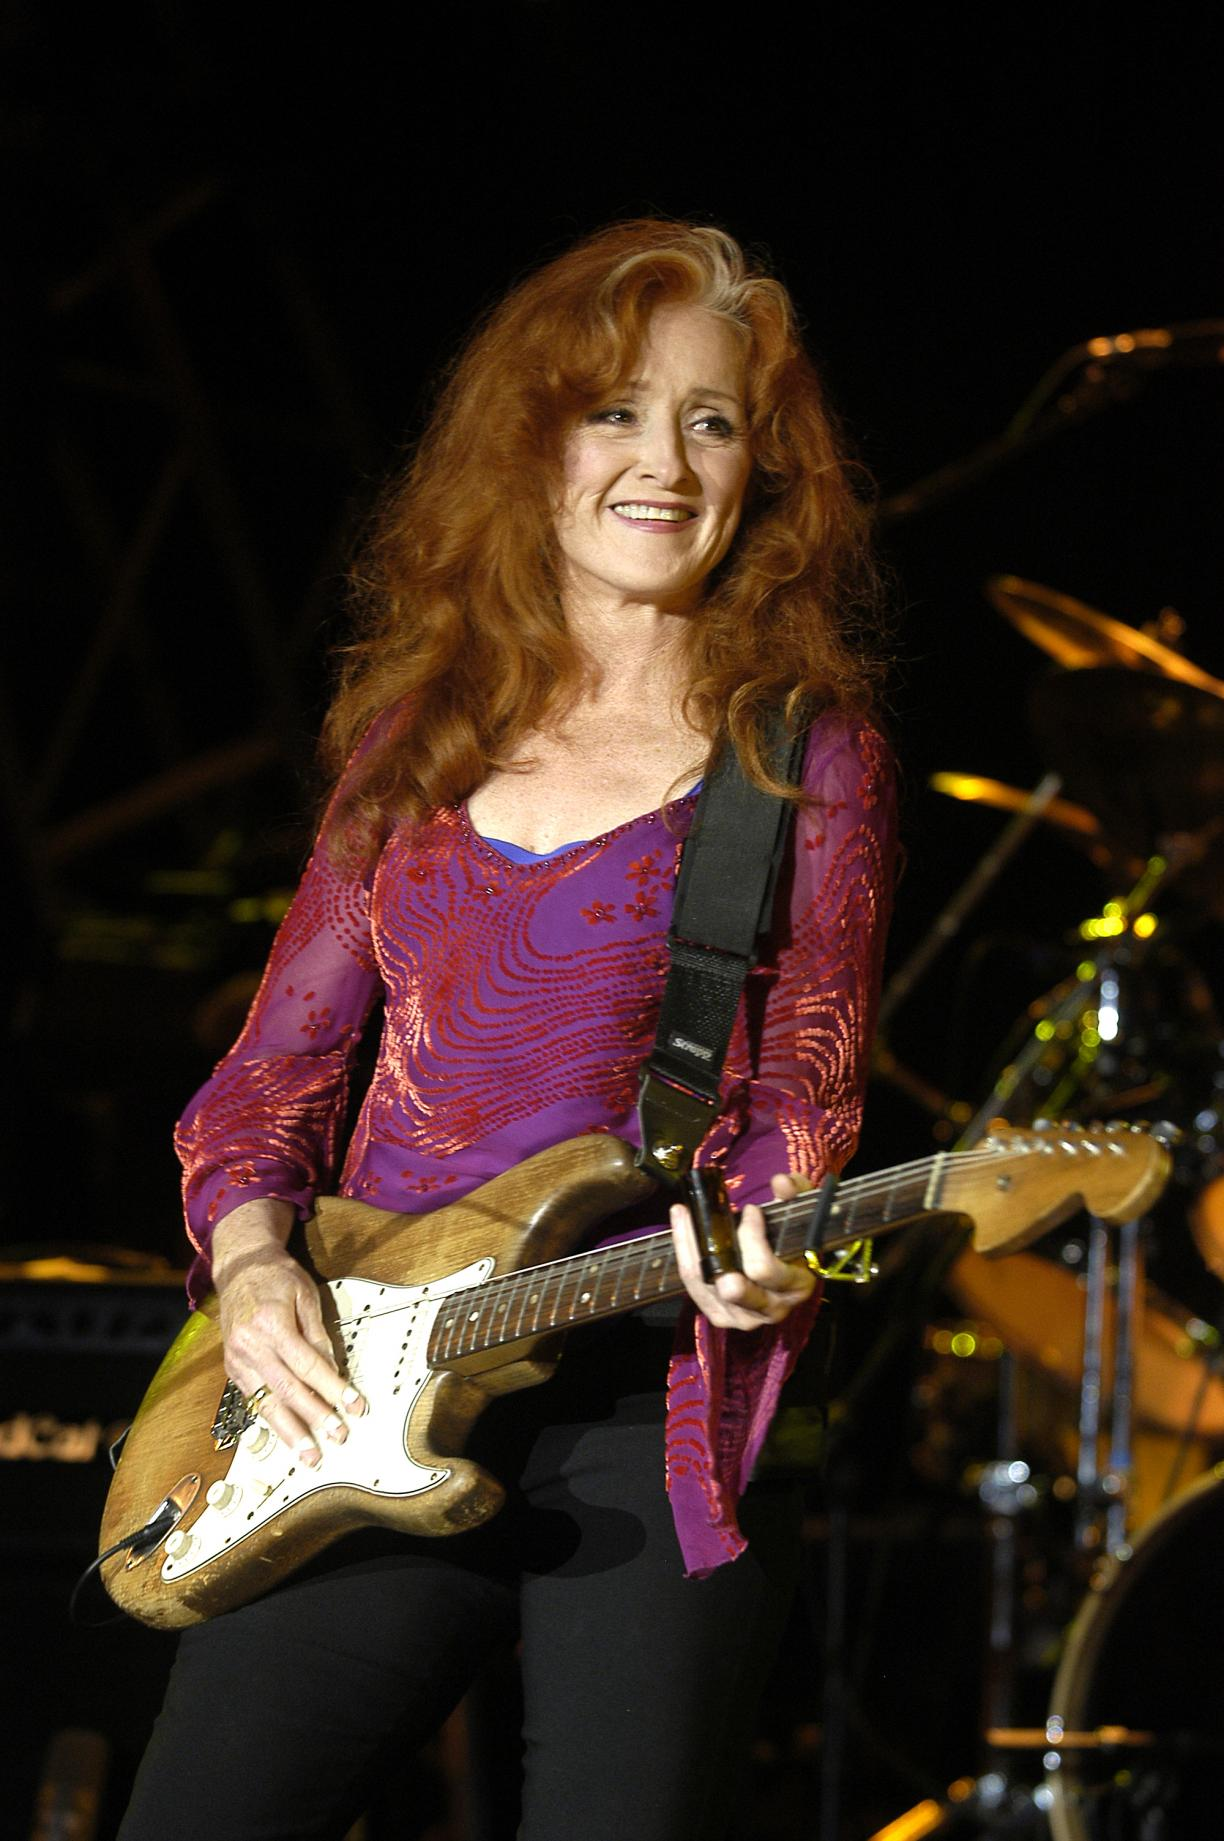 Montreux Jazz Festival 2015 >> Bonnie Raitt 07 July 2003 Auditorium Stravinski | Montreux Jazz